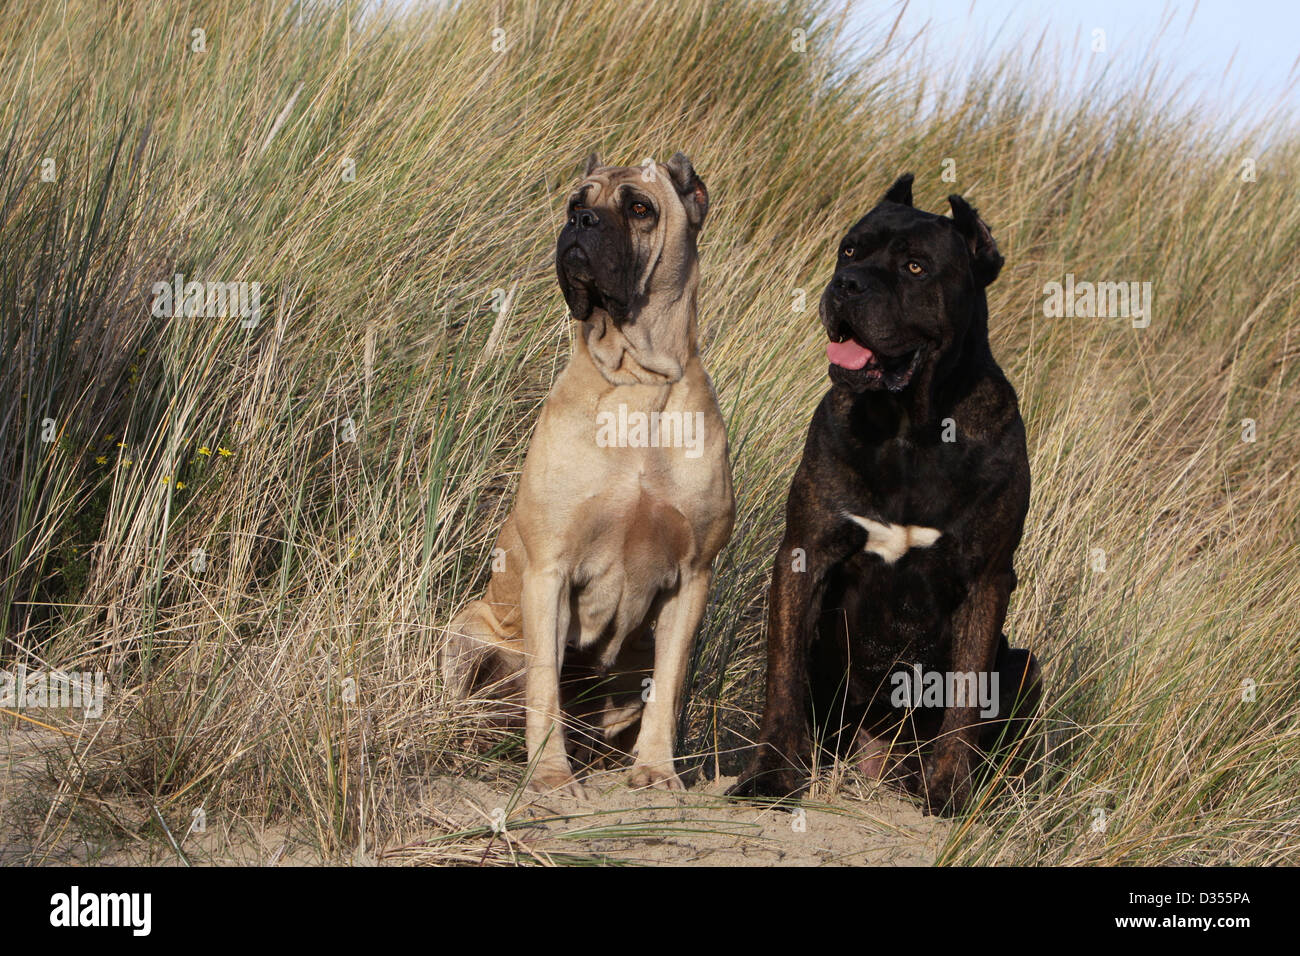 Two Cane Corso Dogs Stock Photos Two Cane Corso Dogs Stock Images